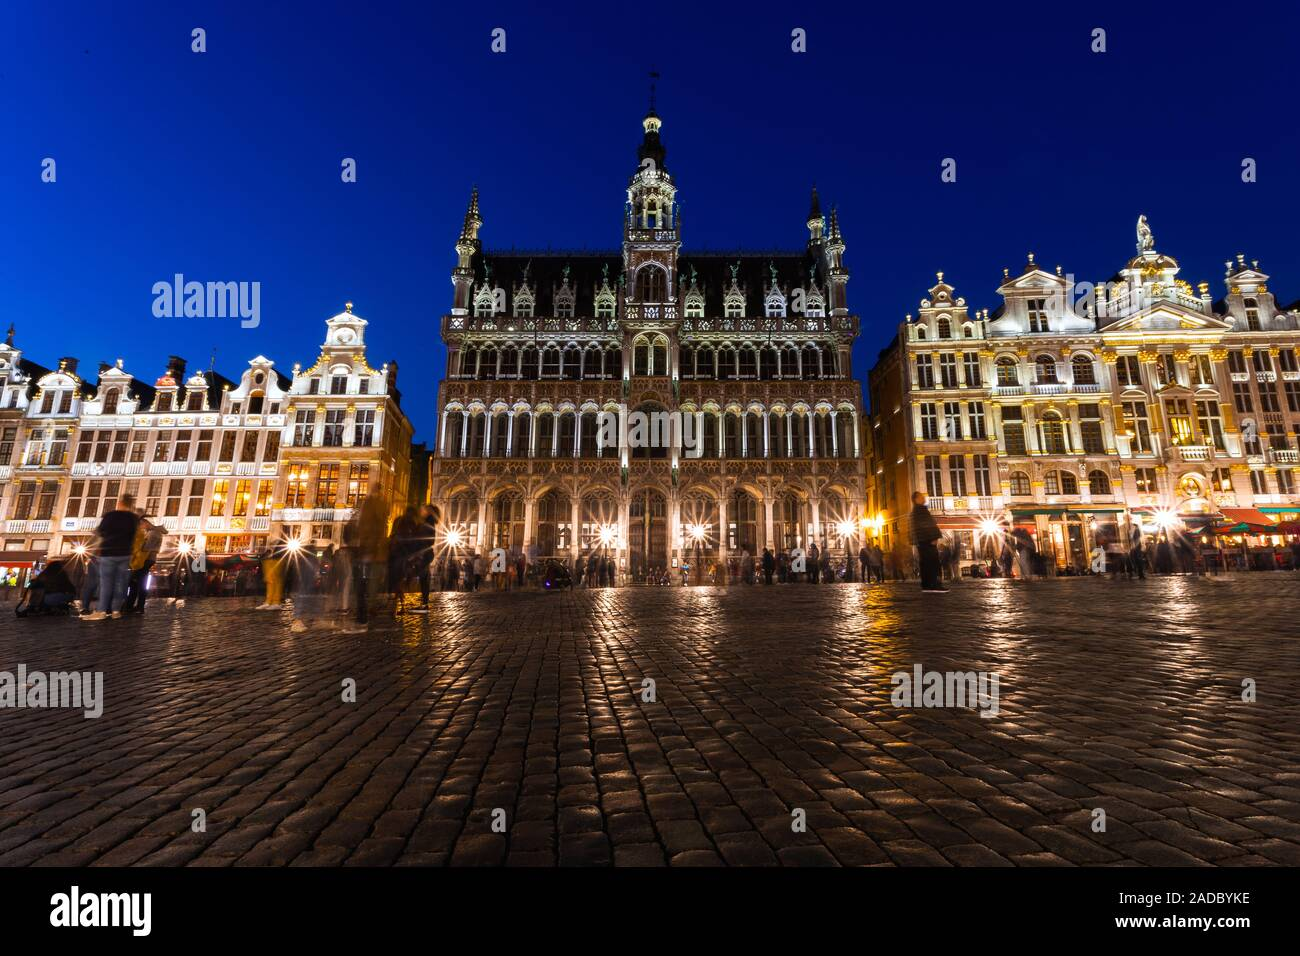 Grand Place in Brussels at night, Belgium Stock Photo